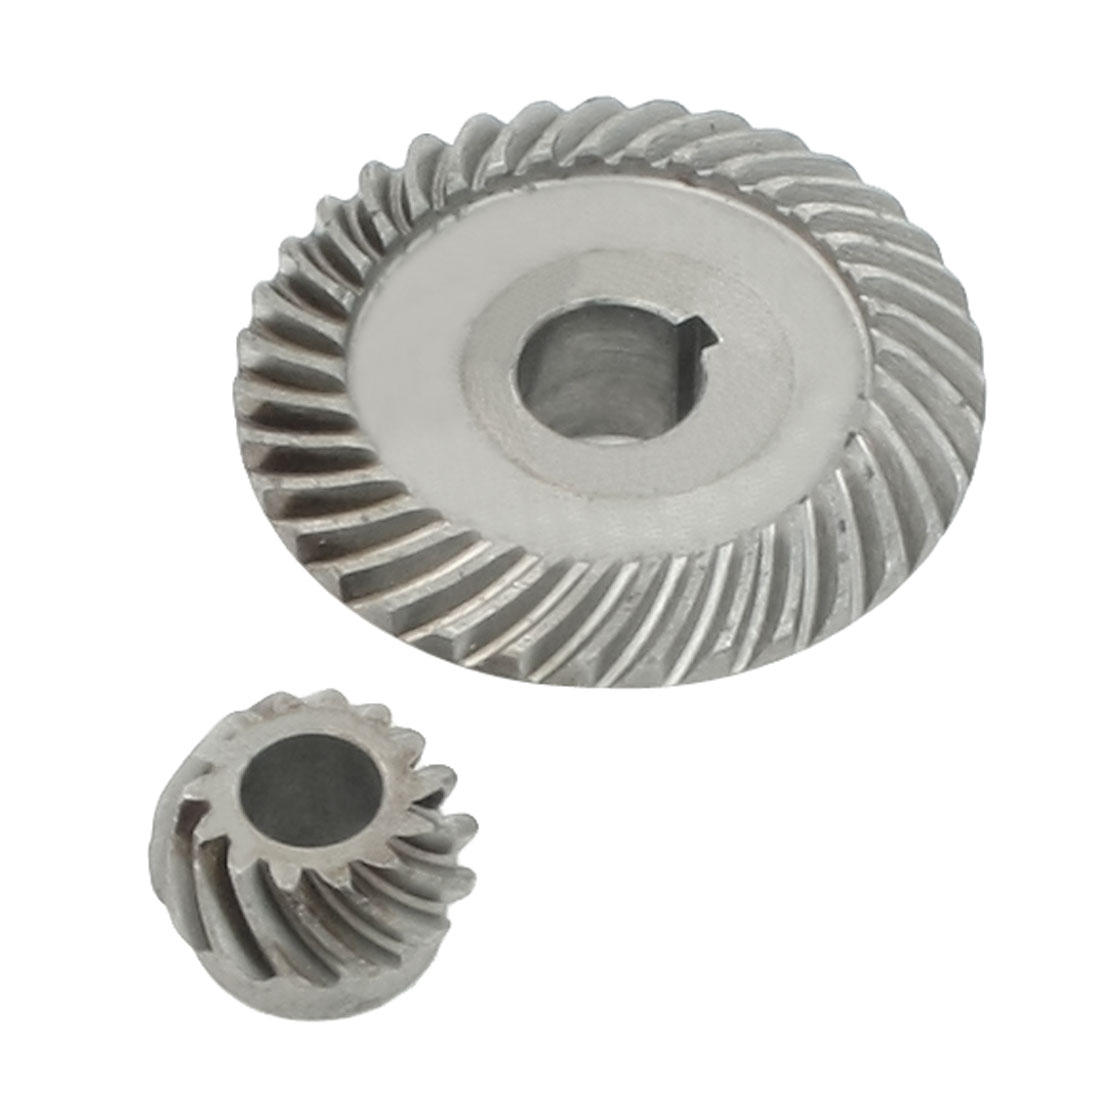 Repair Part Spiral Bevel Gear Pinion Set for Keyang 100 Angle Grinder